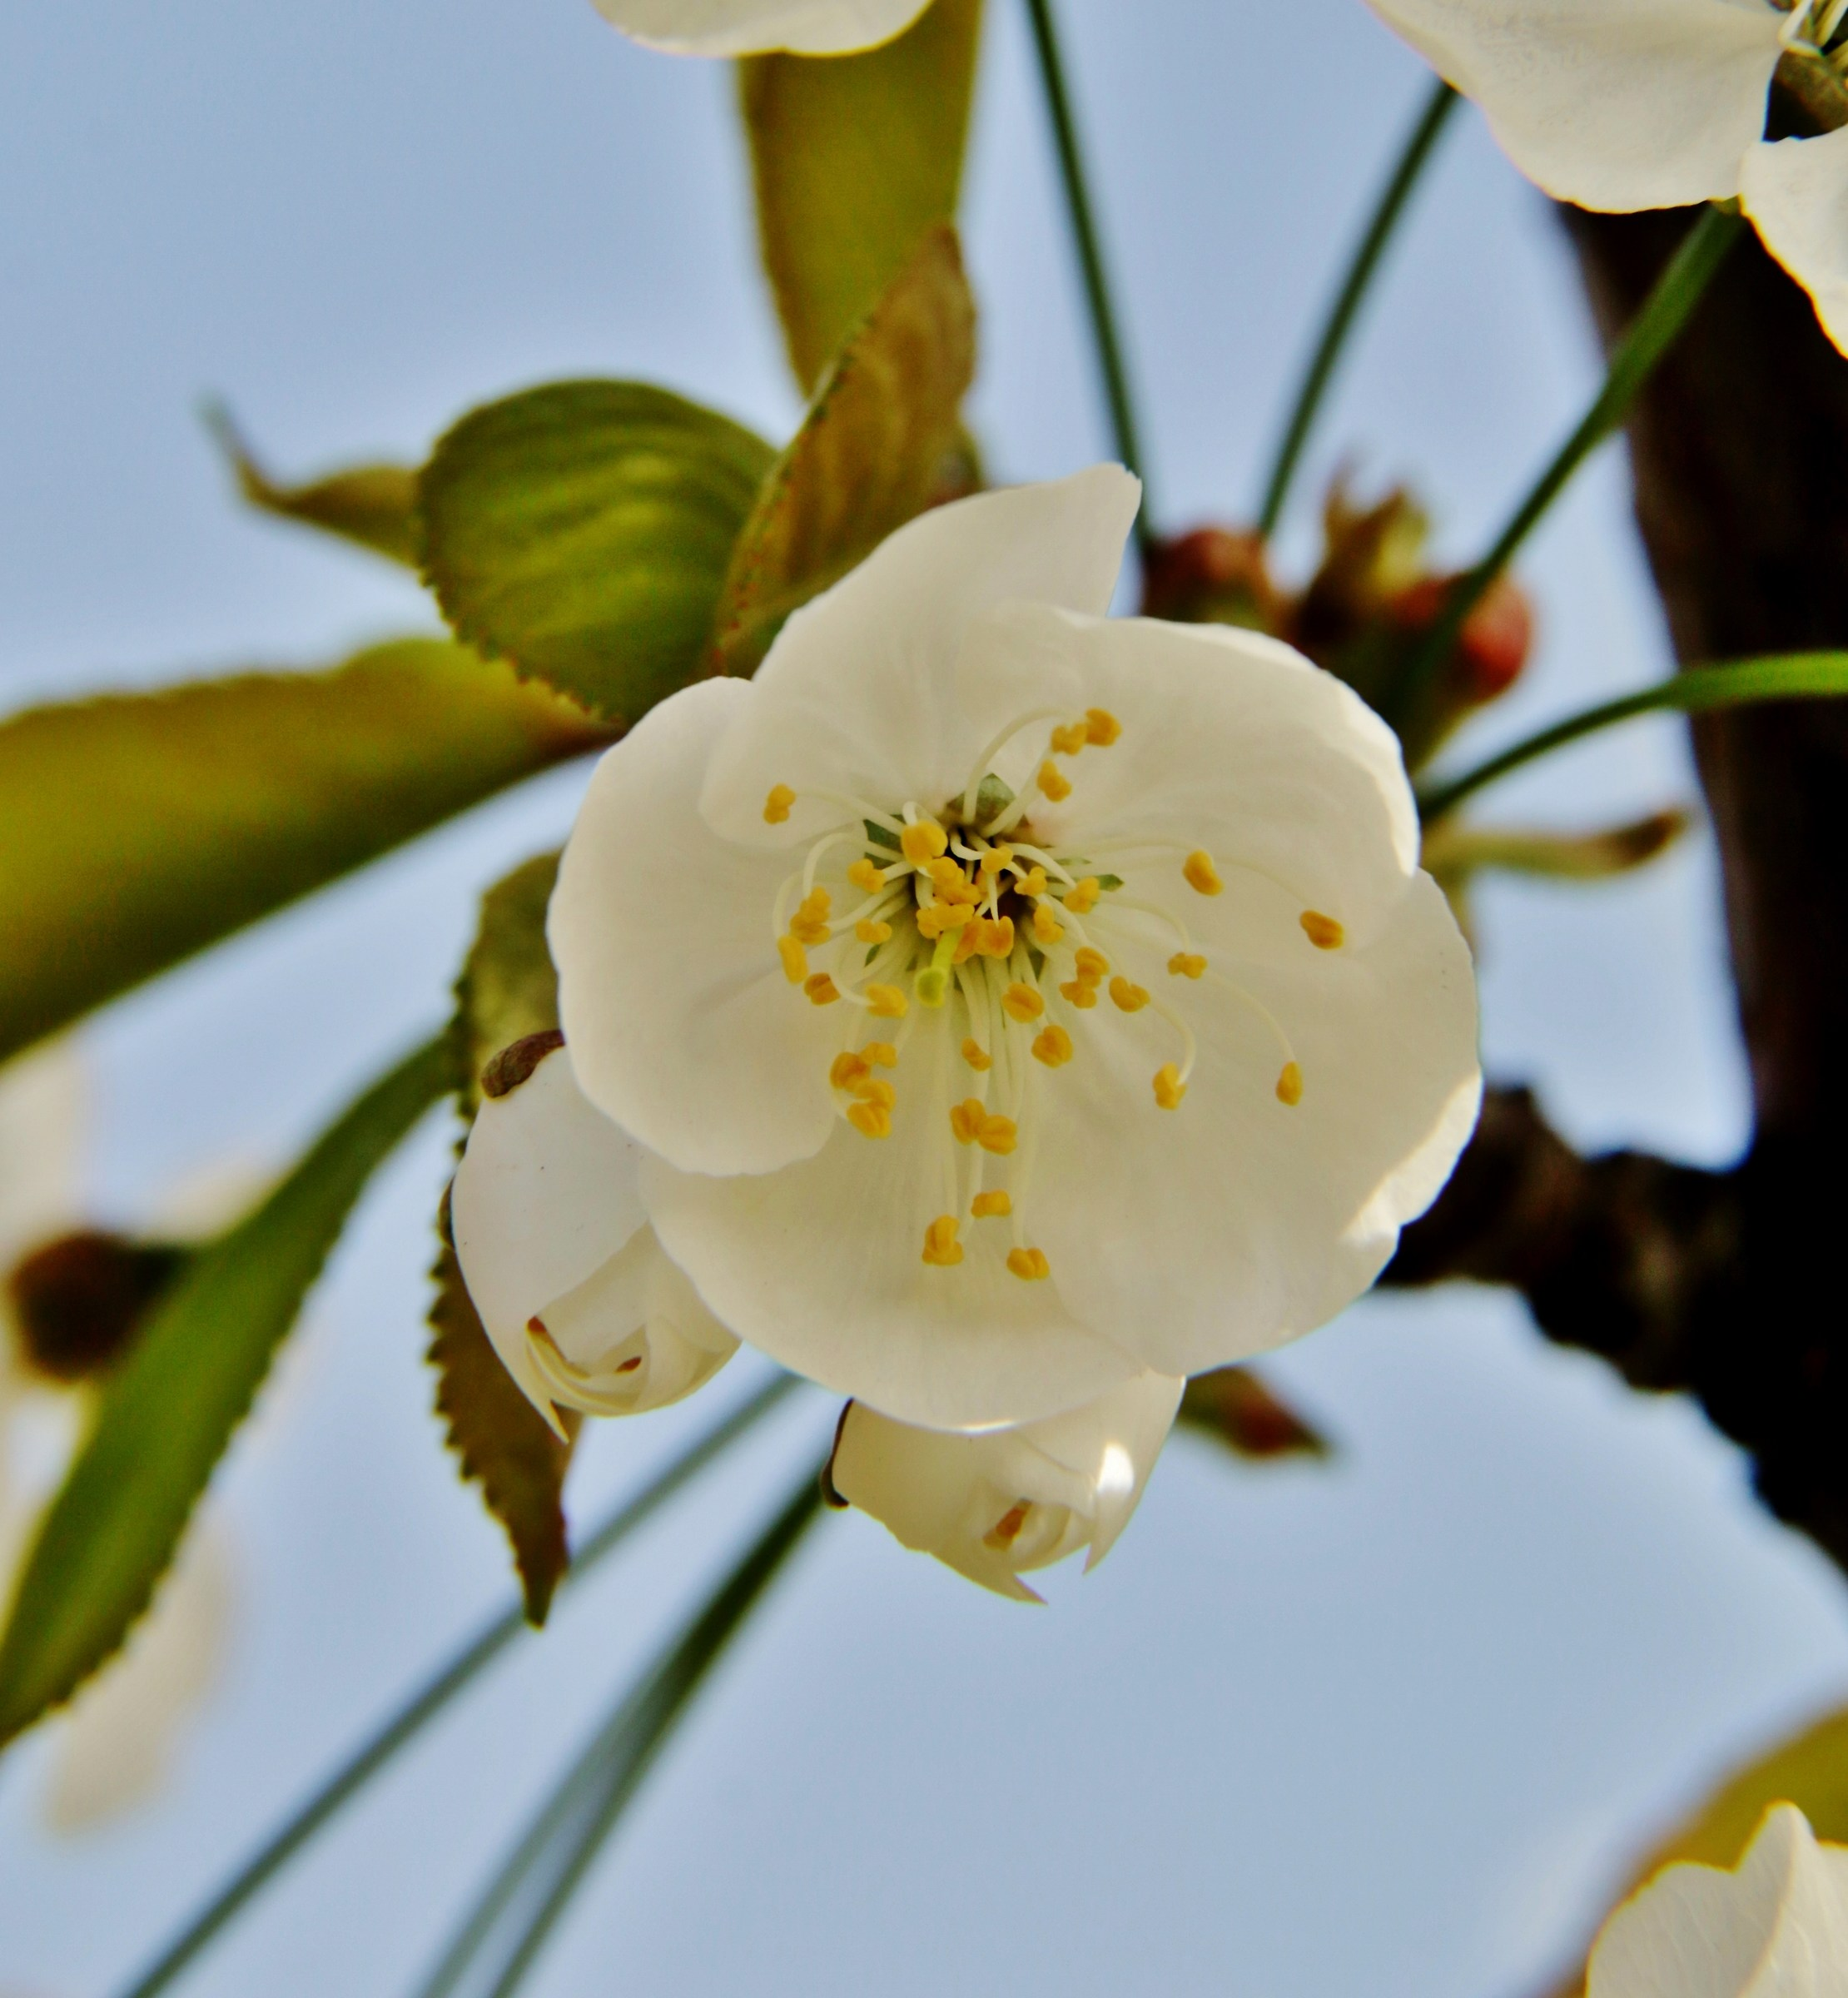 Flower of Sour cherry...